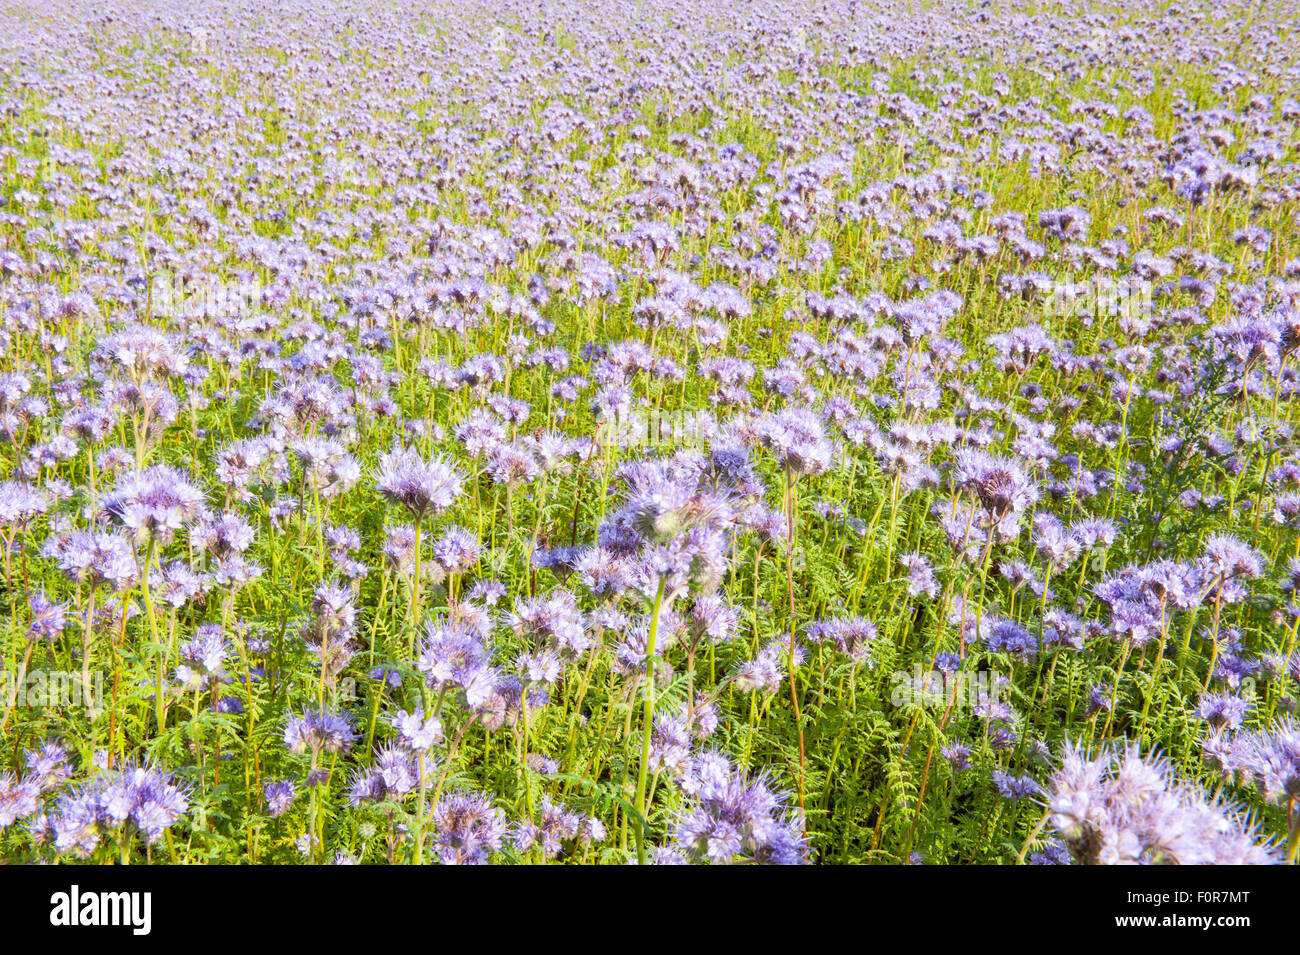 Field of pink wildflowers in green flowerbed for honey bees - Stock Image